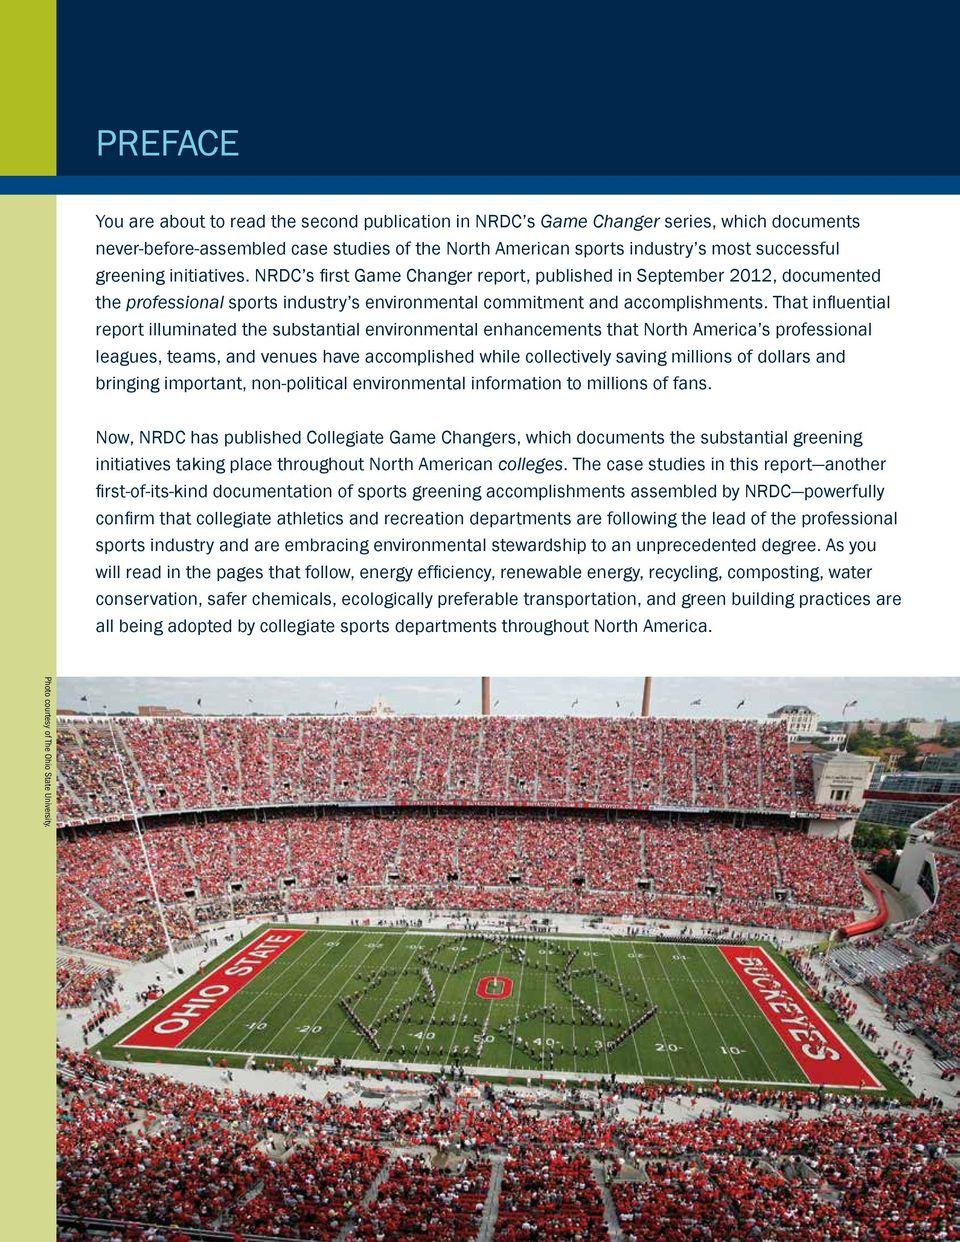 That influential report illuminated the substantial environmental enhancements that North America s professional leagues, teams, and venues have accomplished while collectively saving millions of